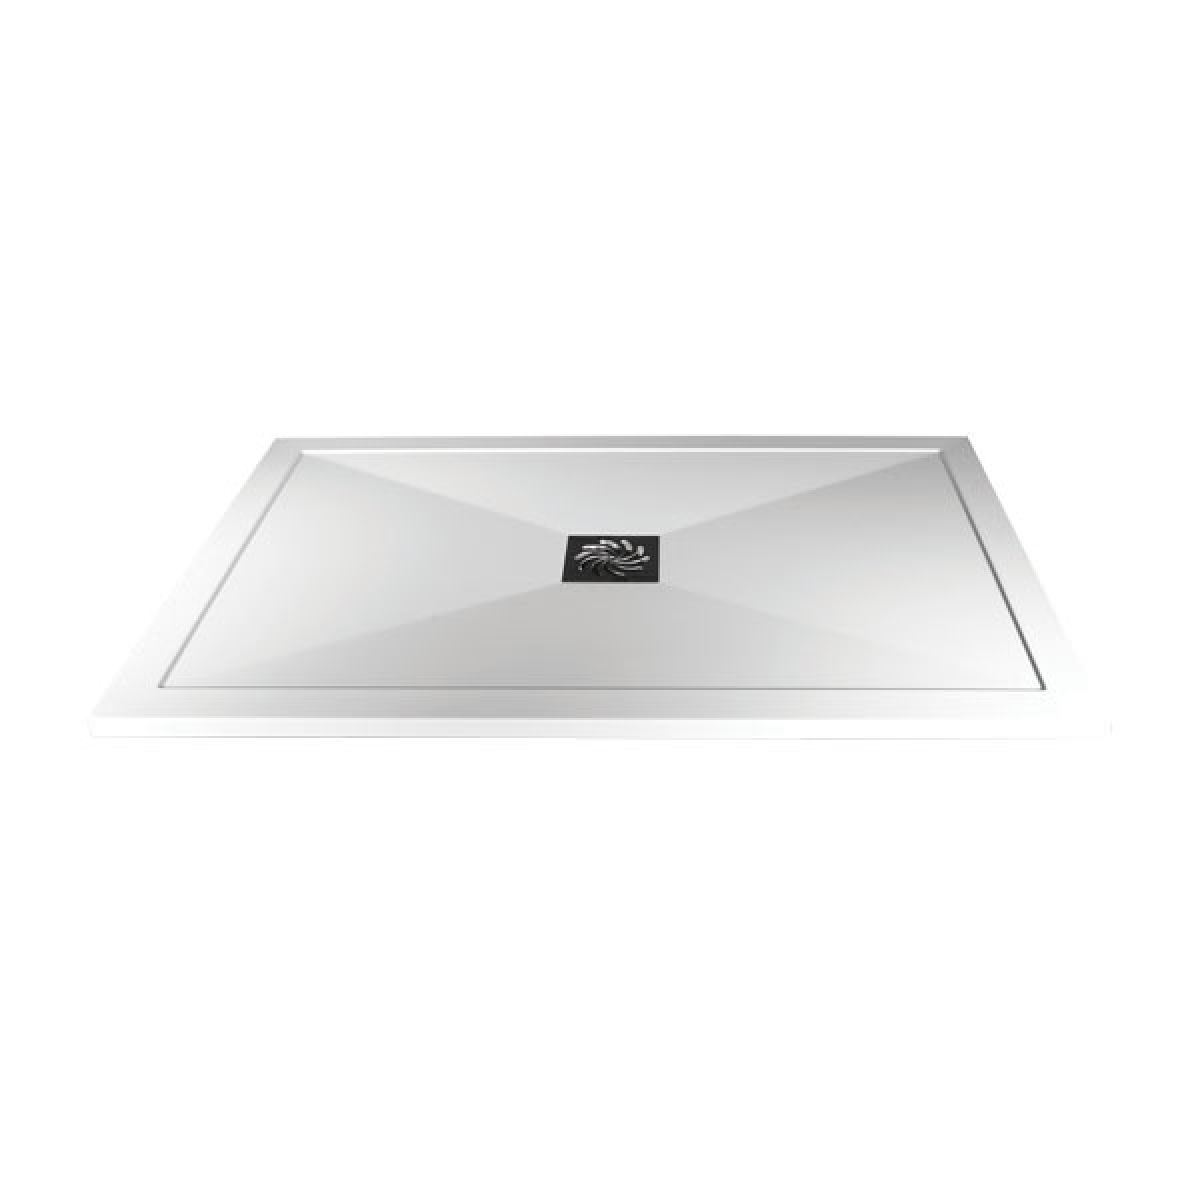 Frontline Slimline Rectangular Shower Tray 1600 x 800mm